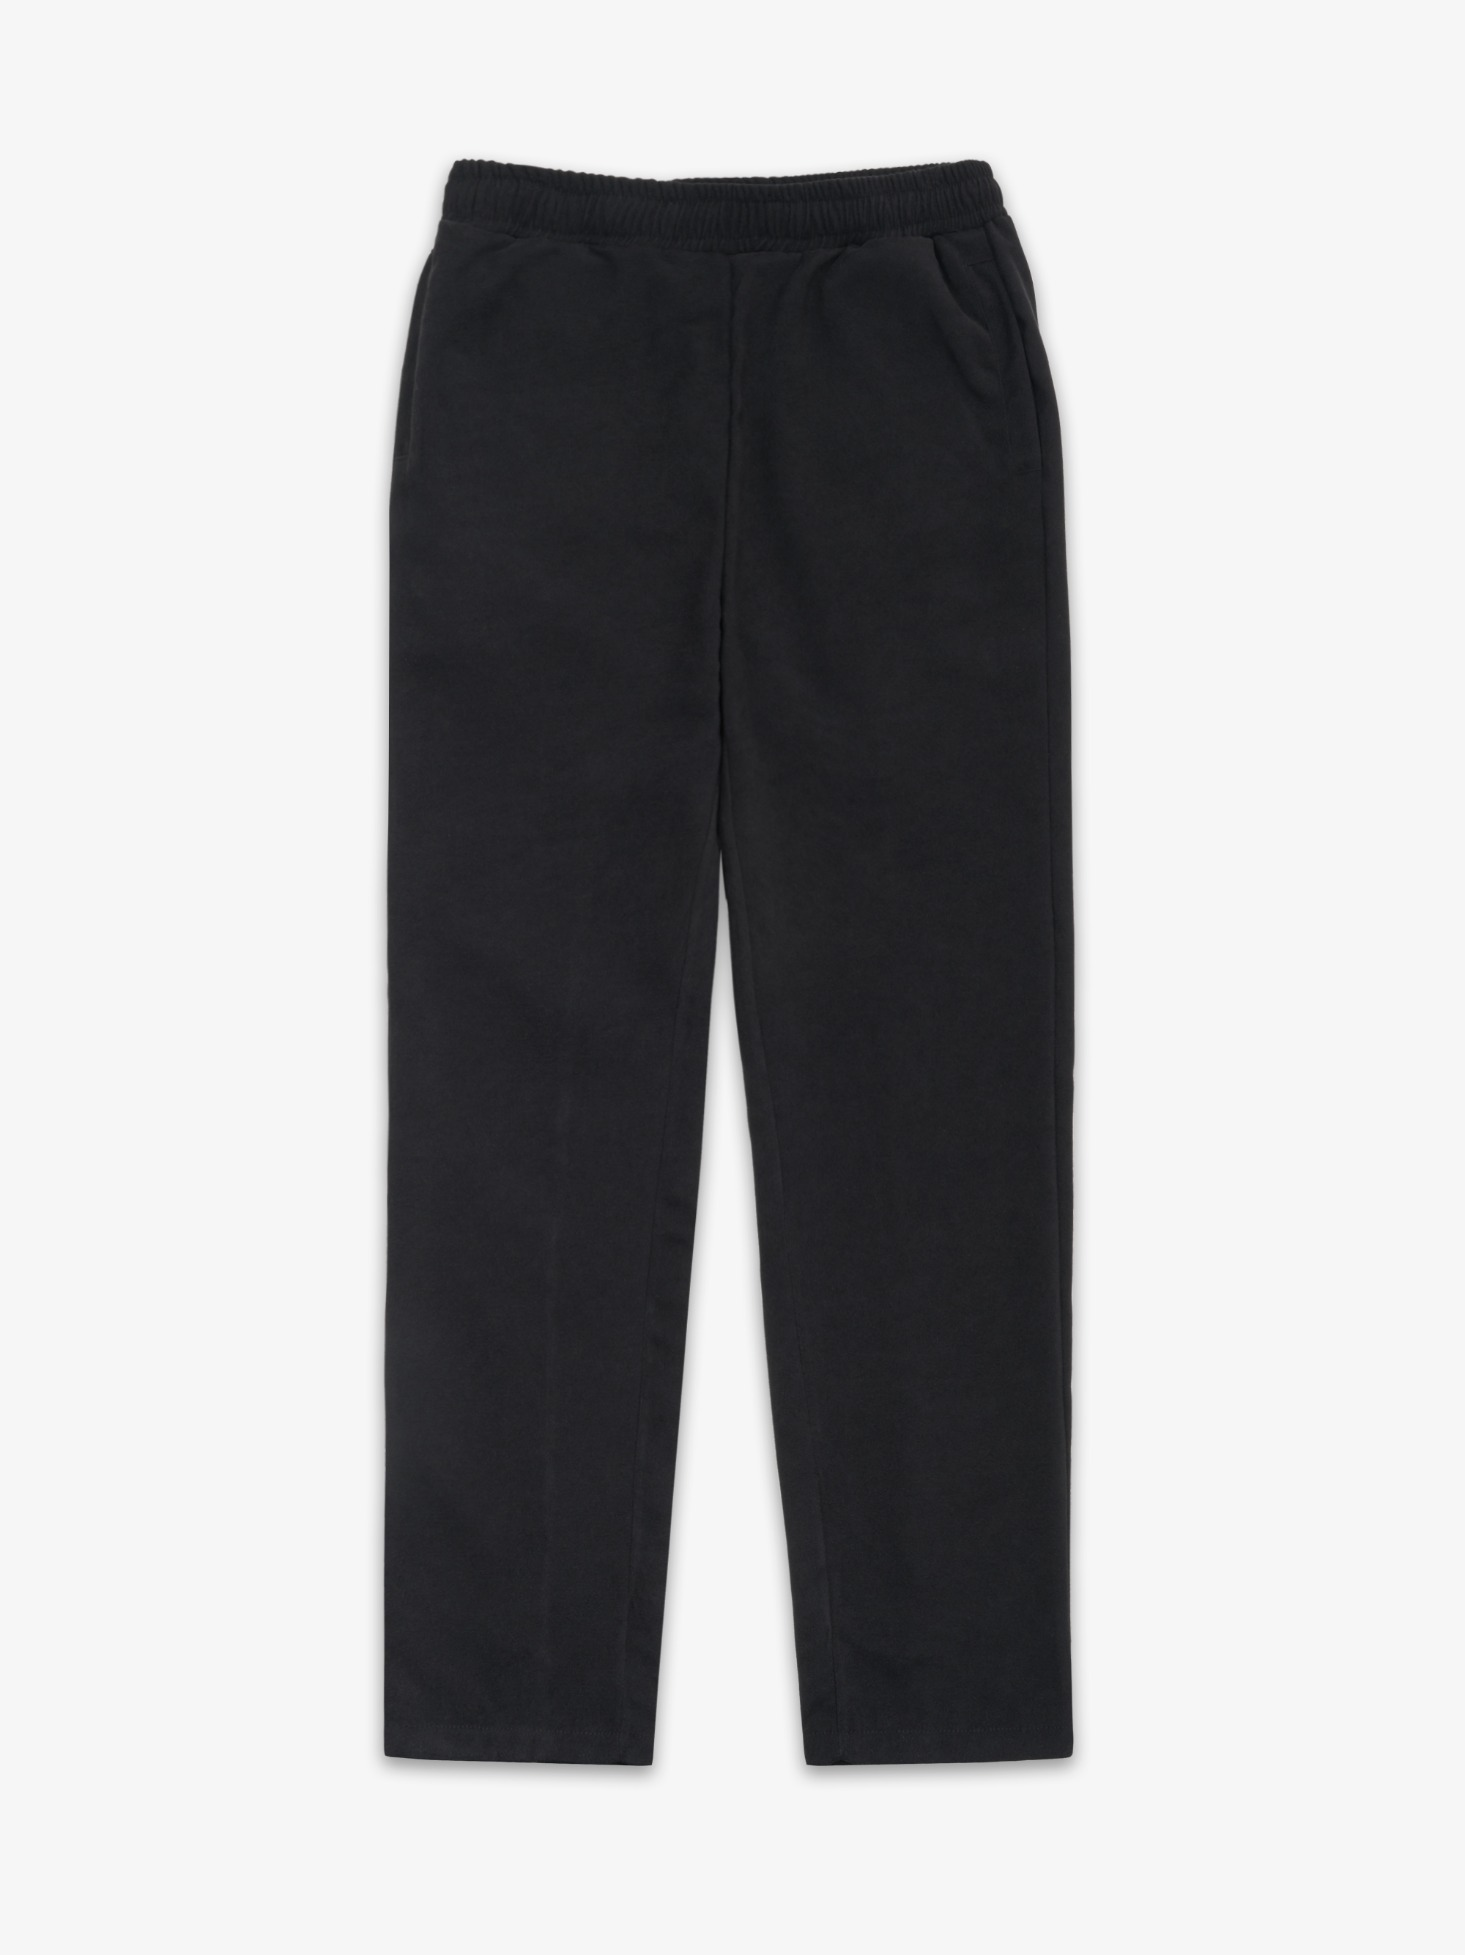 3-DIMENSIONAL PANTS(BLACK SUEDE)